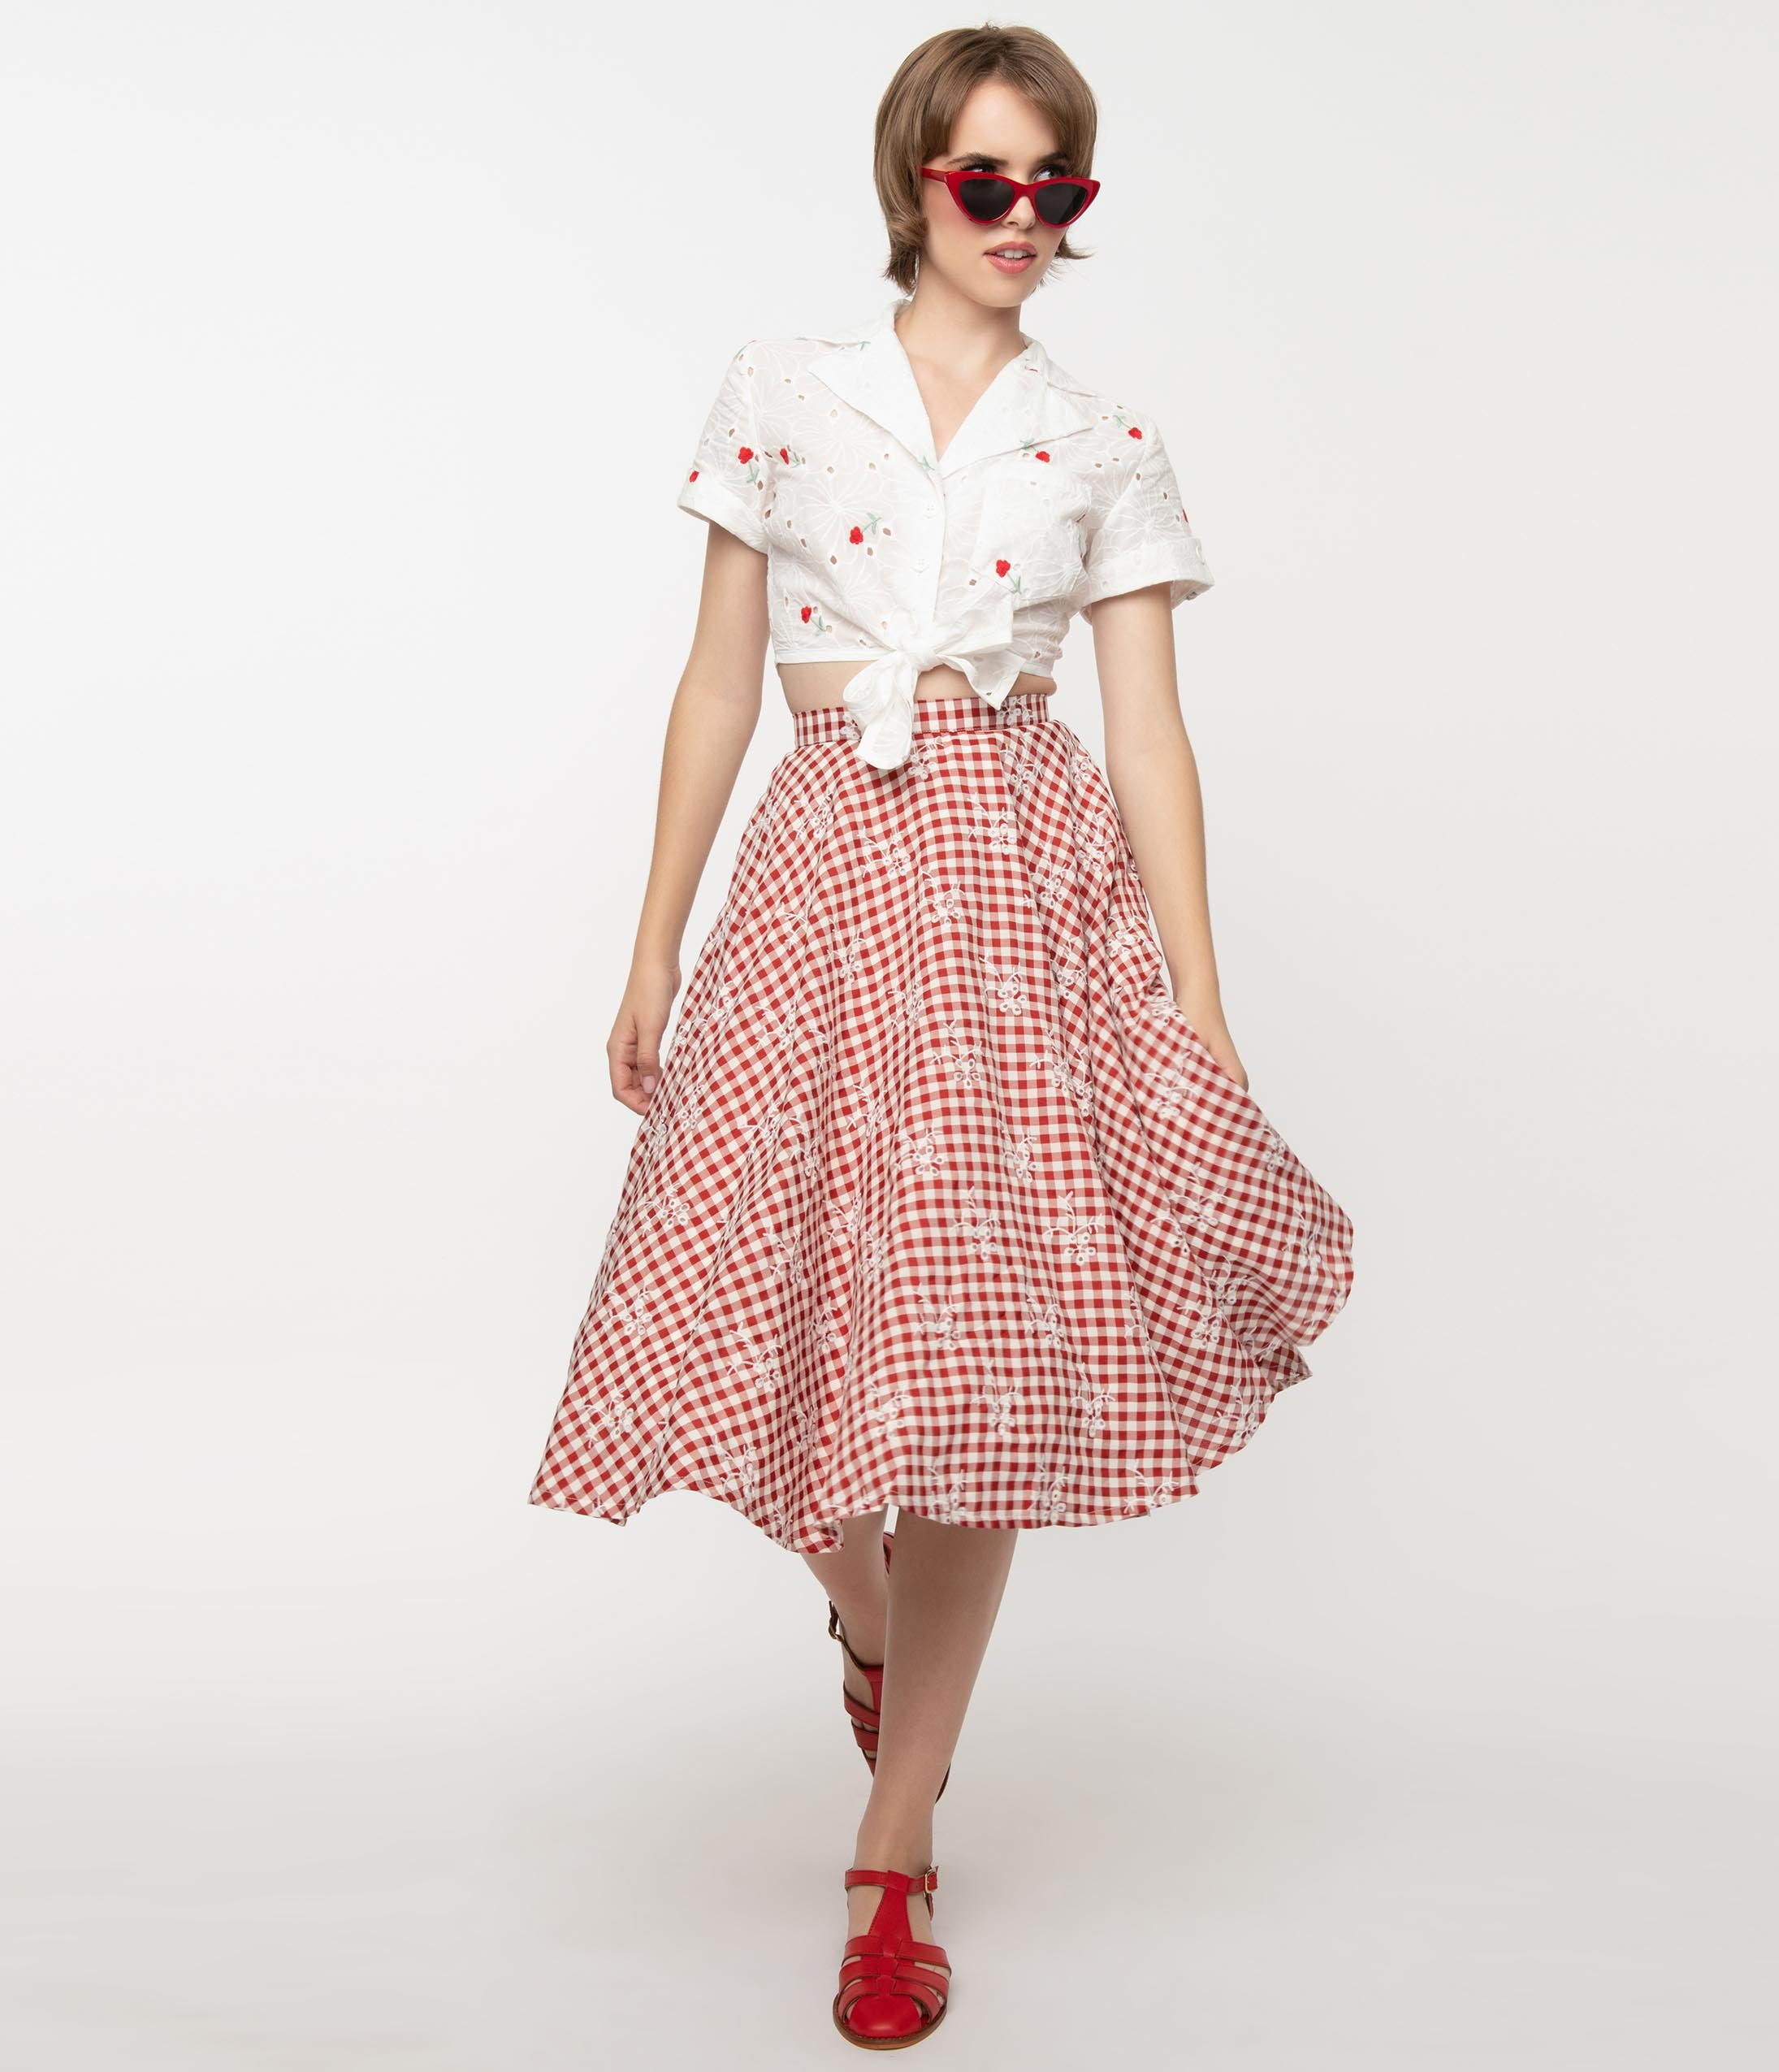 1940s Style Skirts- Vintage High Waisted Skirts Magnolia Place Red Gingham  Floral Eyelet Sally Swing Skirt $58.00 AT vintagedancer.com